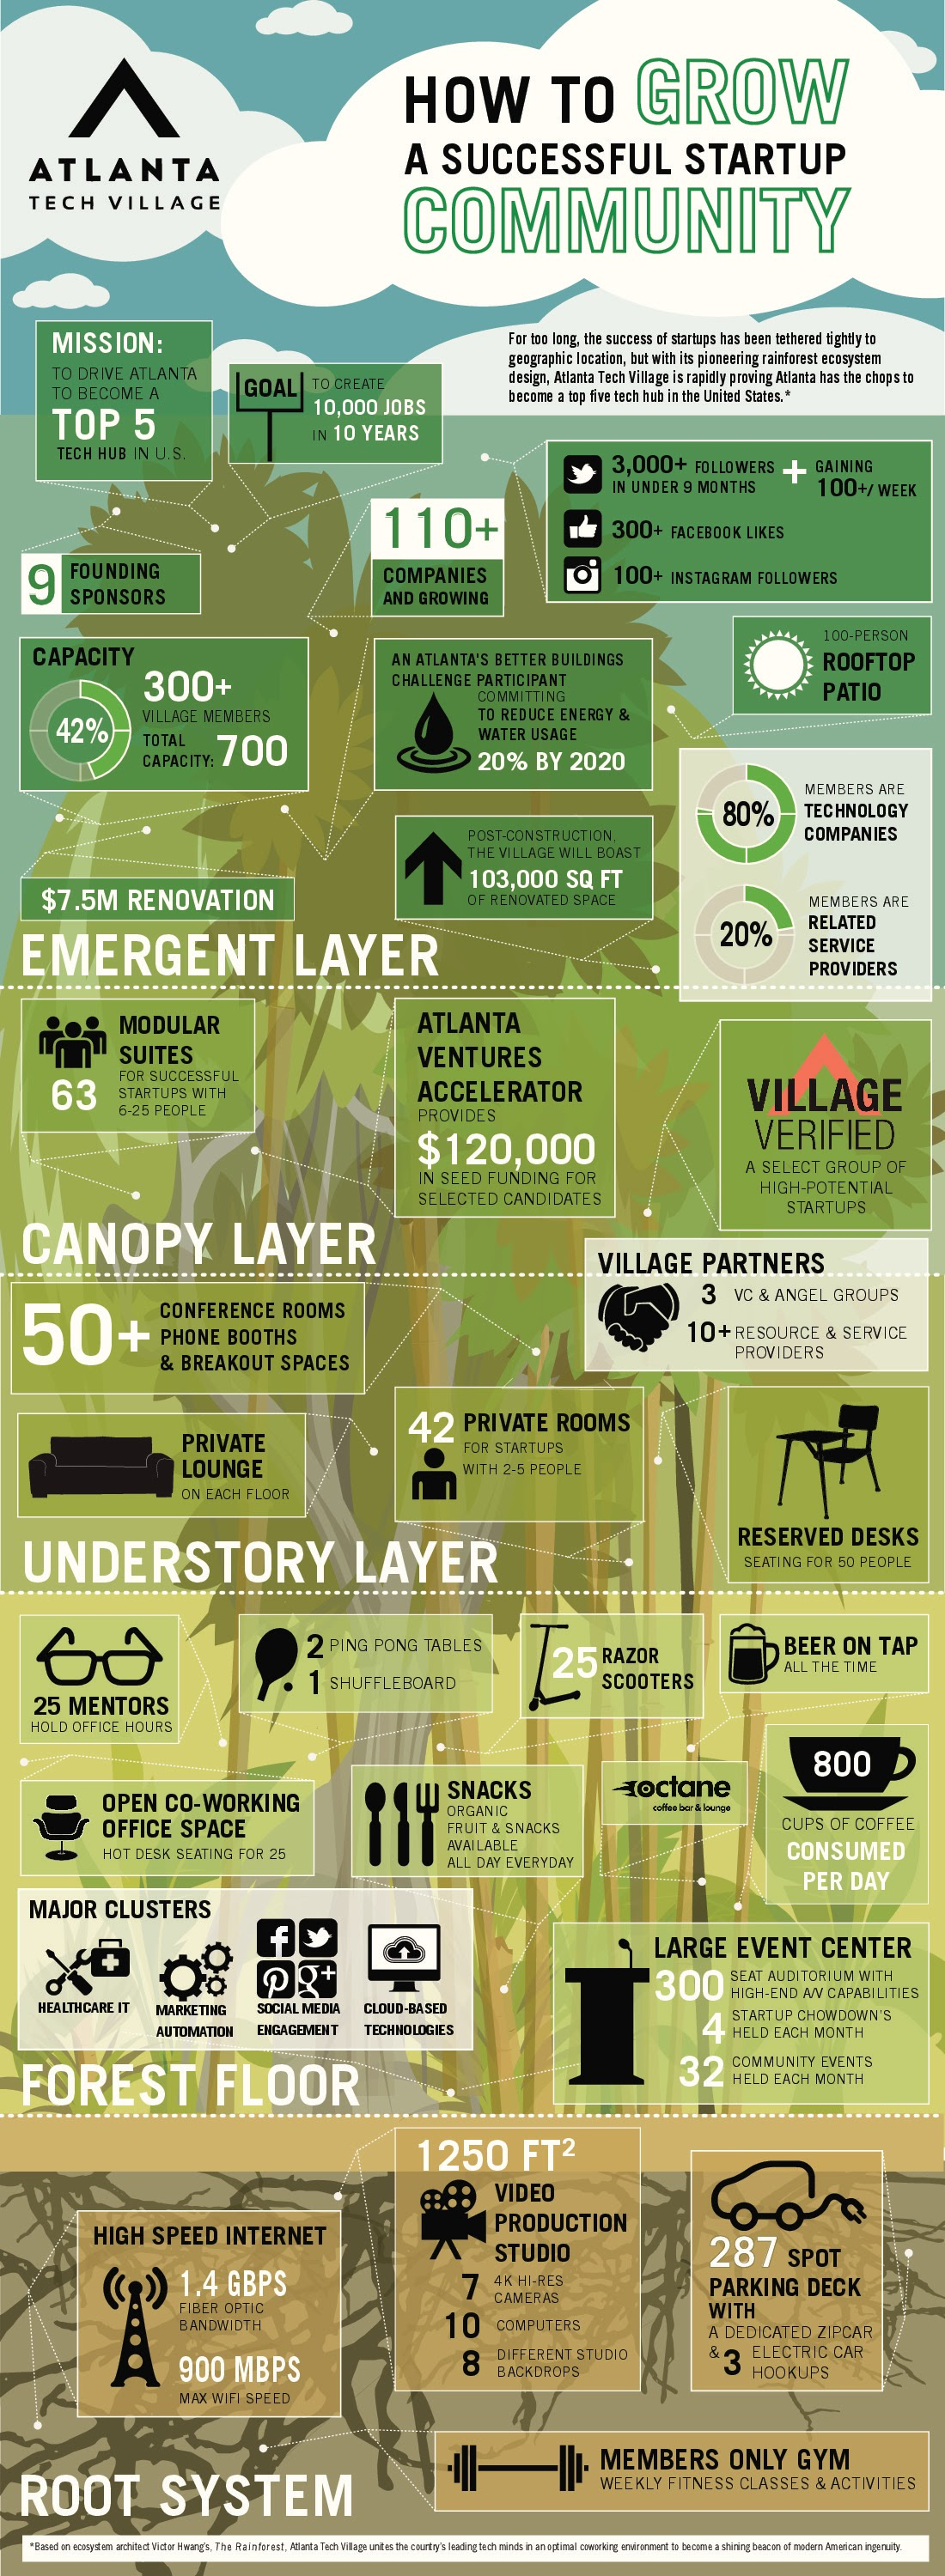 How-To-Grow-A-Successful-Startup-Community #Infographic